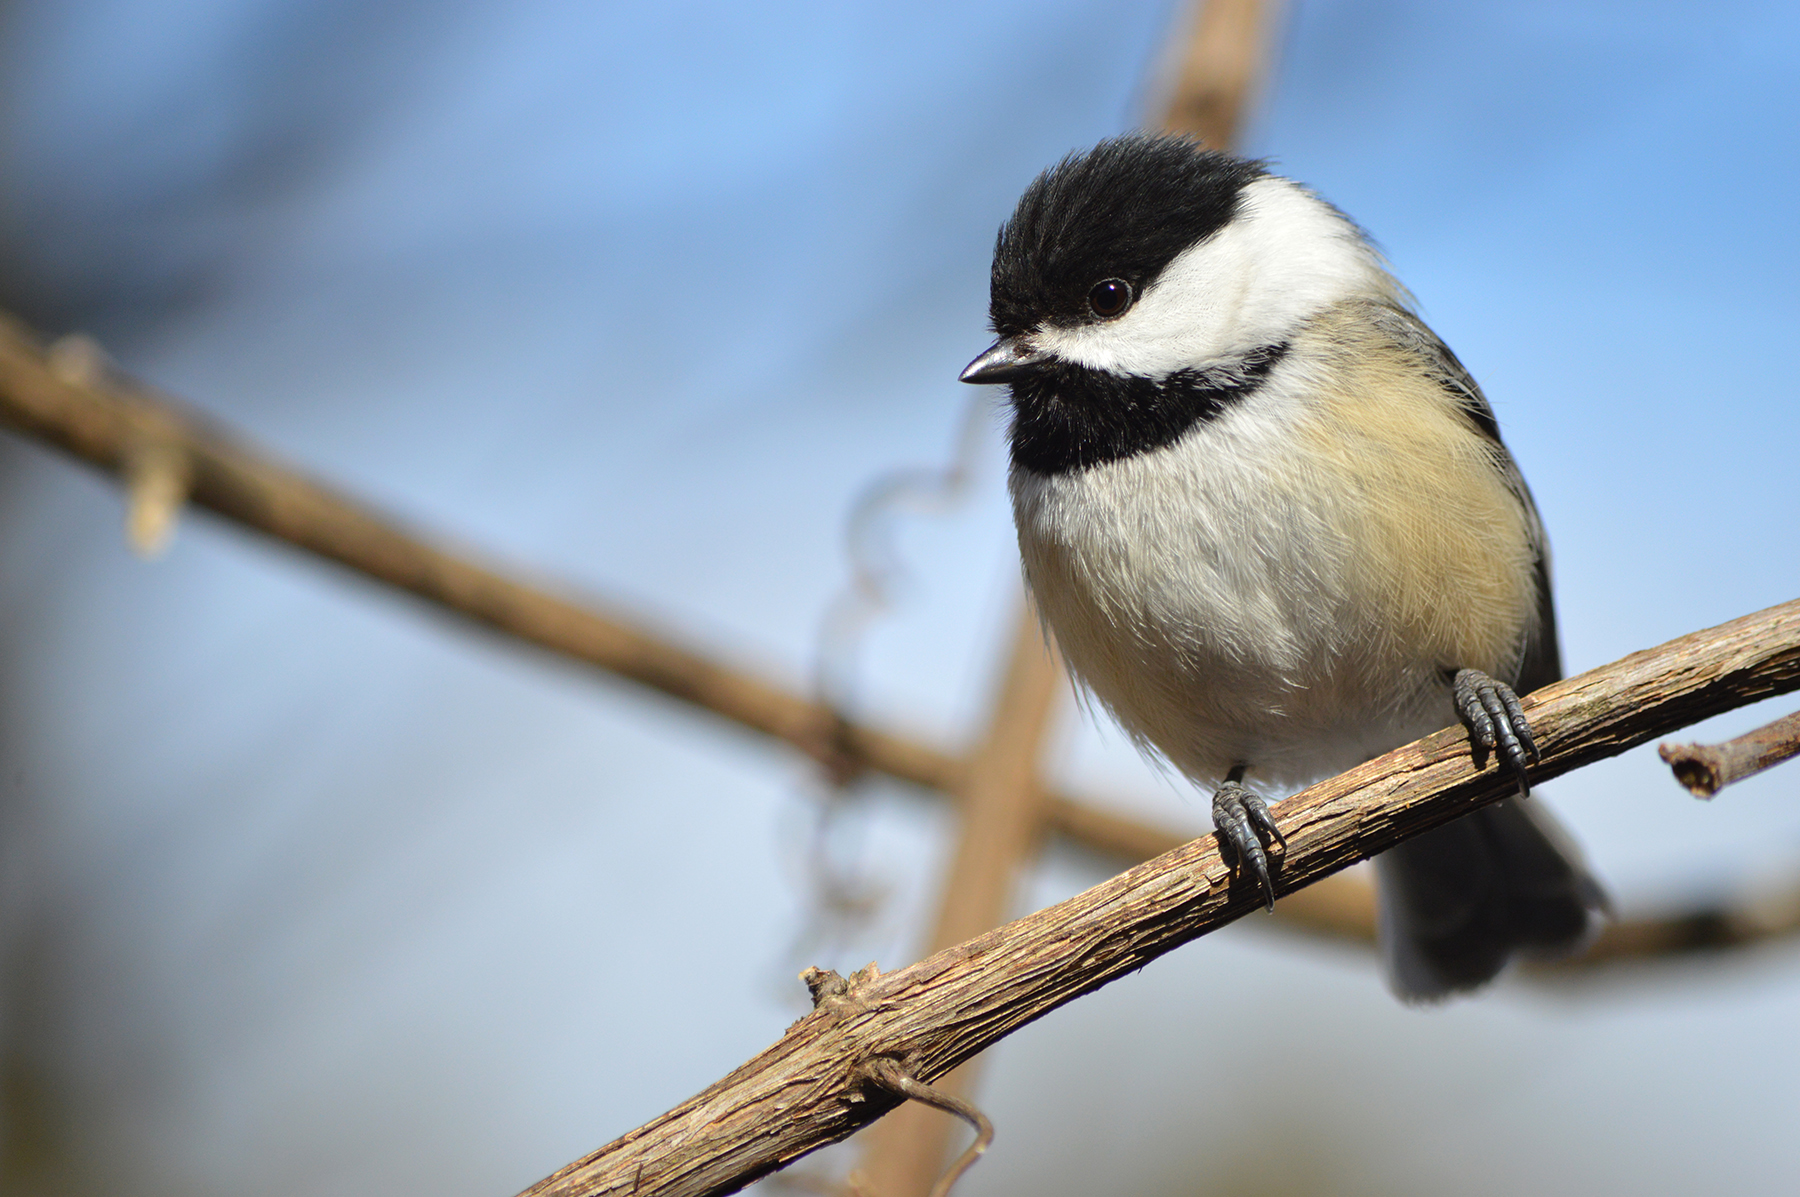 Birds strike windows of homes with, and without feeders